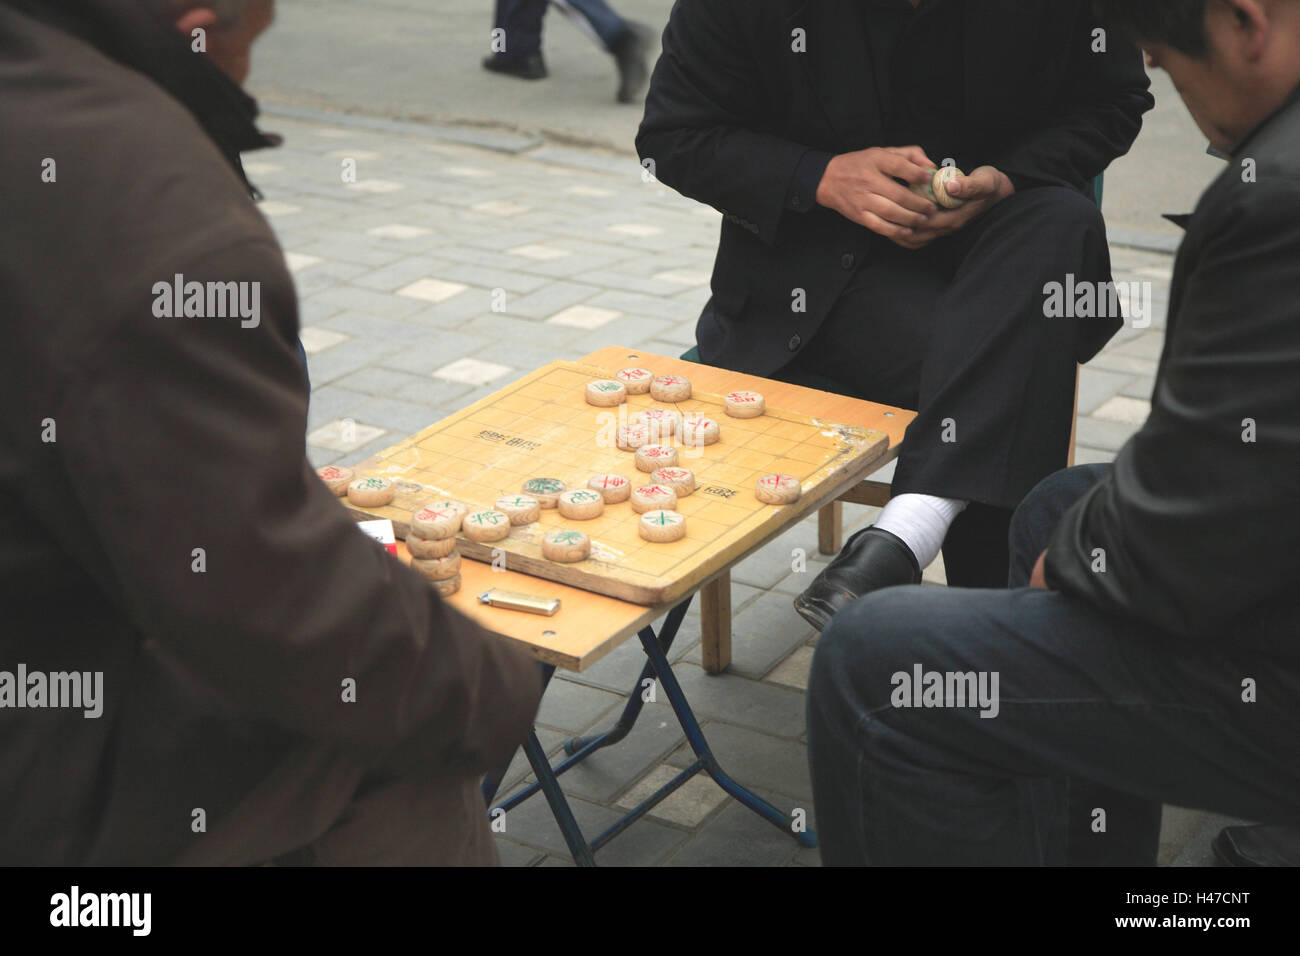 China, footpath, men, Chinese, chess, Xiangqi, Asia, culture, roadside, person, Chinese, three, table, stool, board, - Stock Image